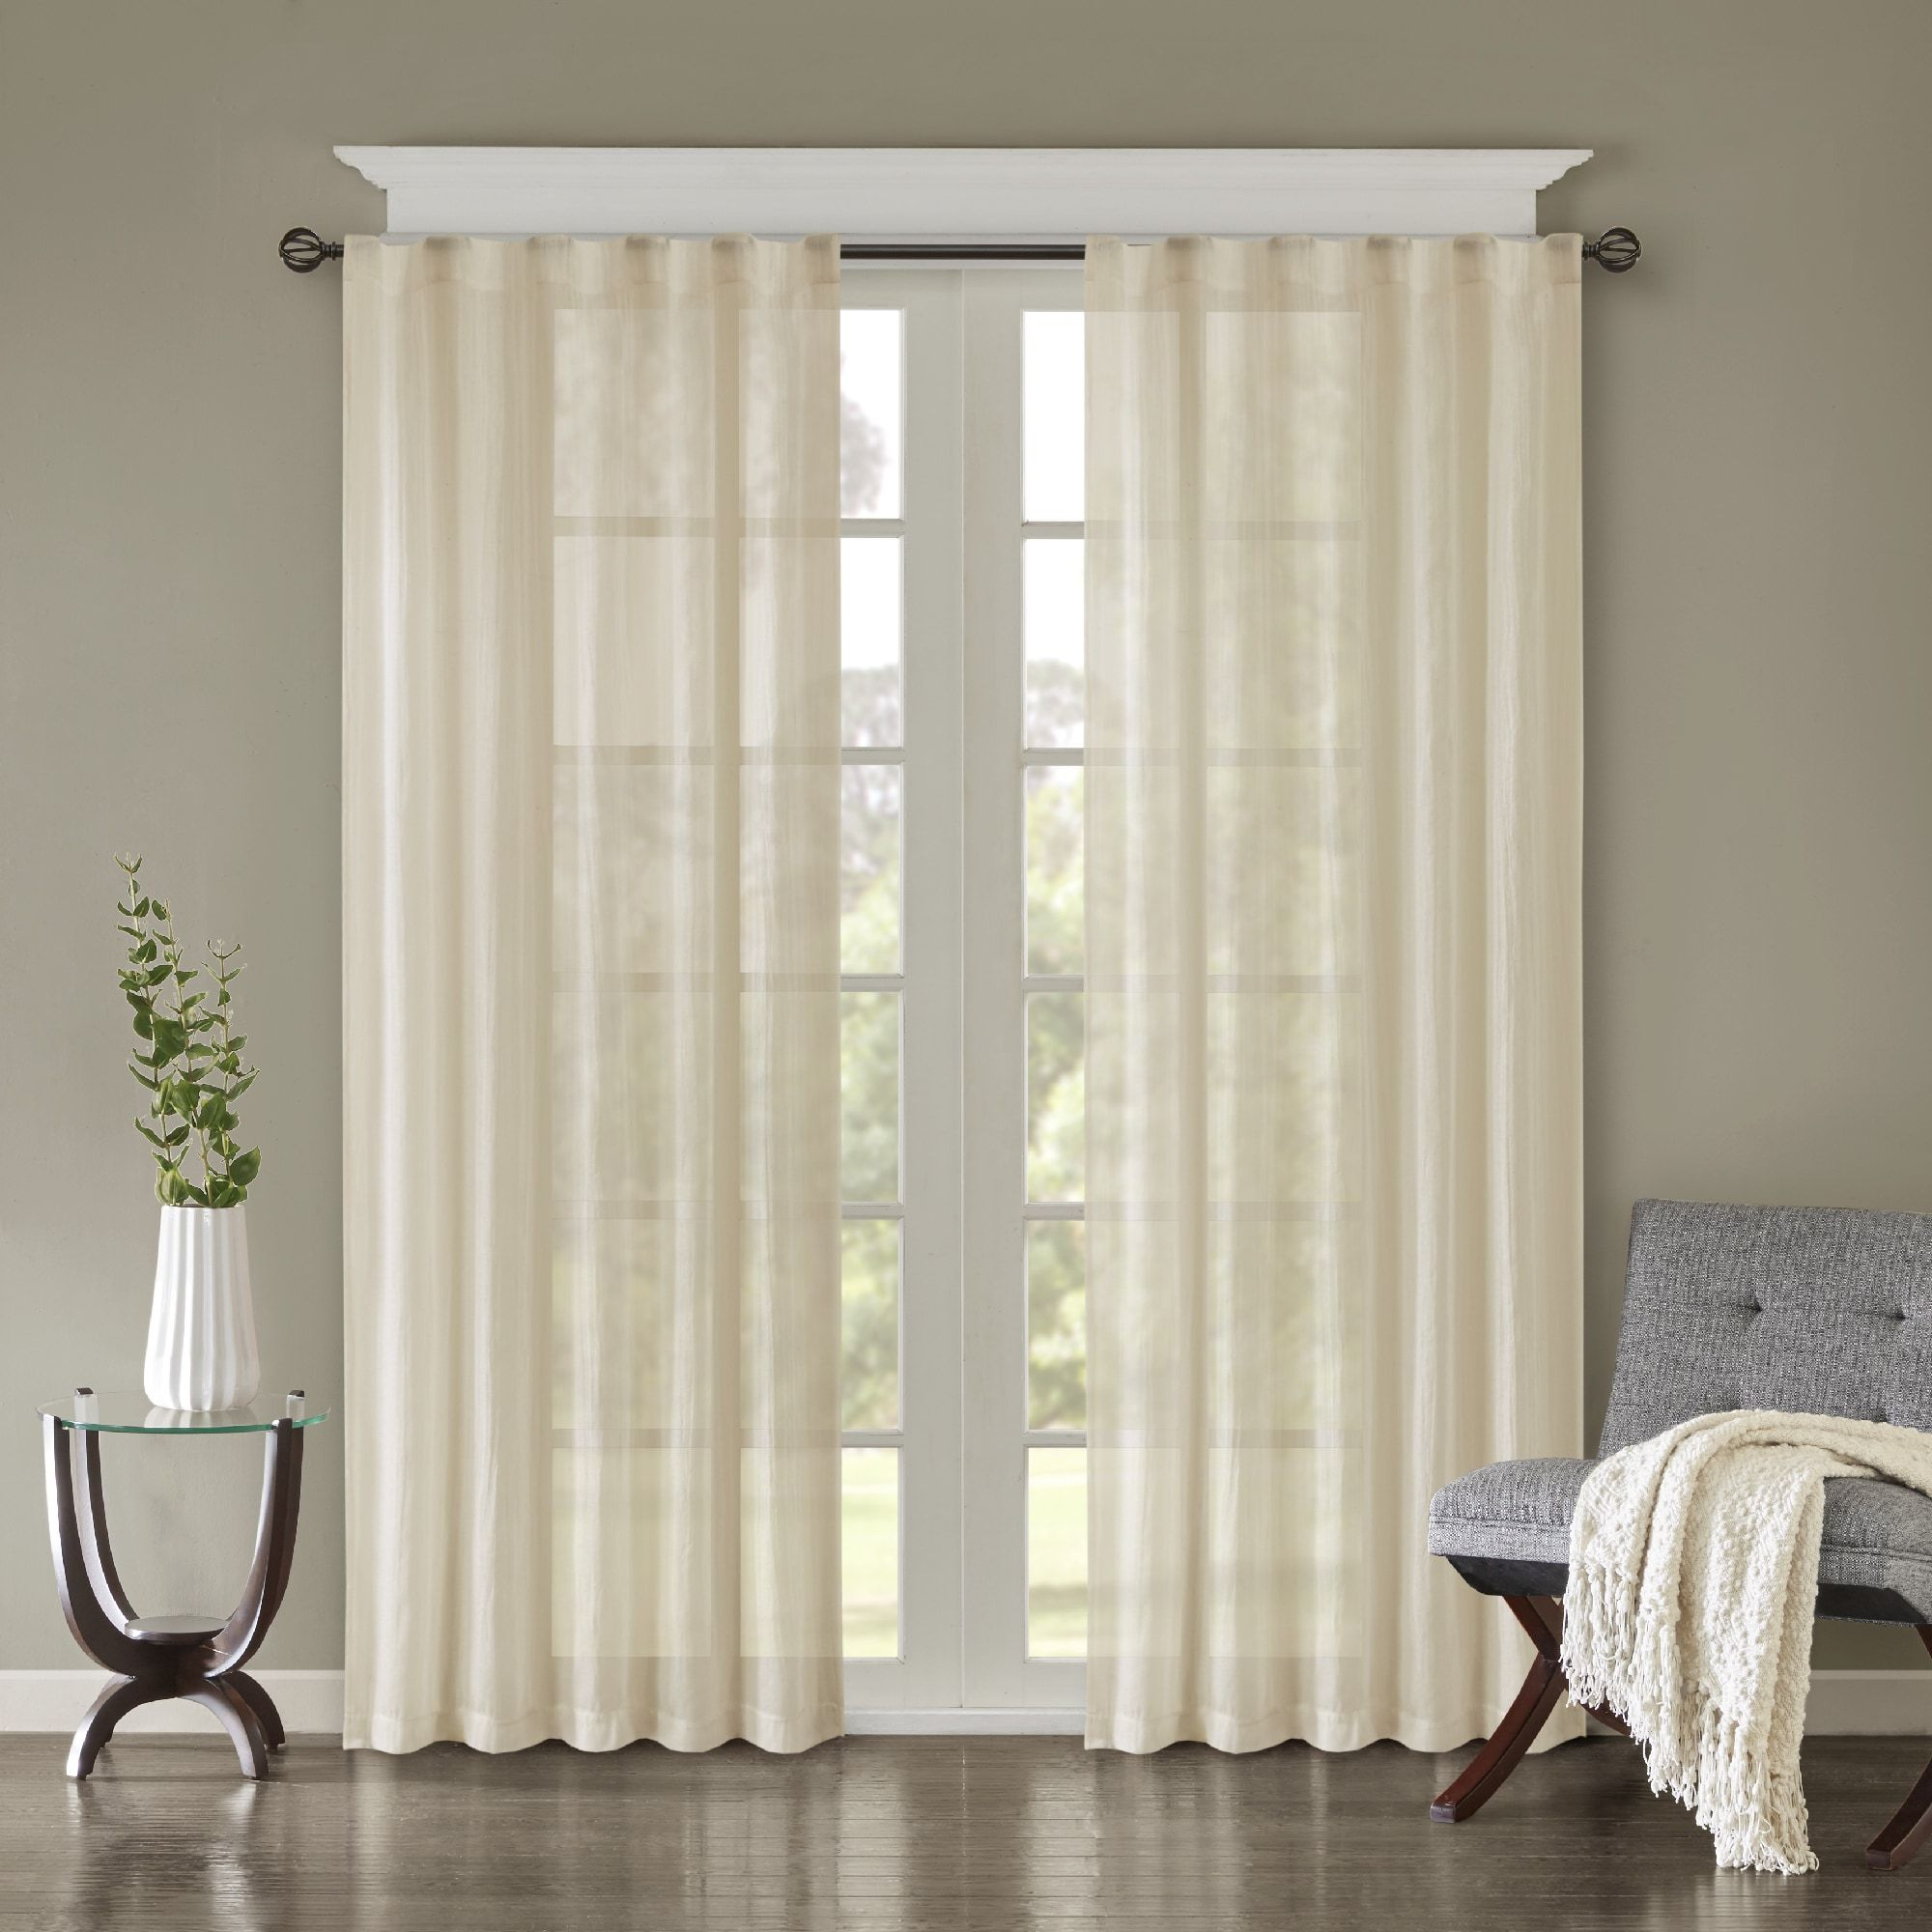 Madison Park Kaylee Lightweight Crushed Sheer Window Curtain With Regard To Kaylee Solid Crushed Sheer Window Curtain Pairs (View 7 of 20)